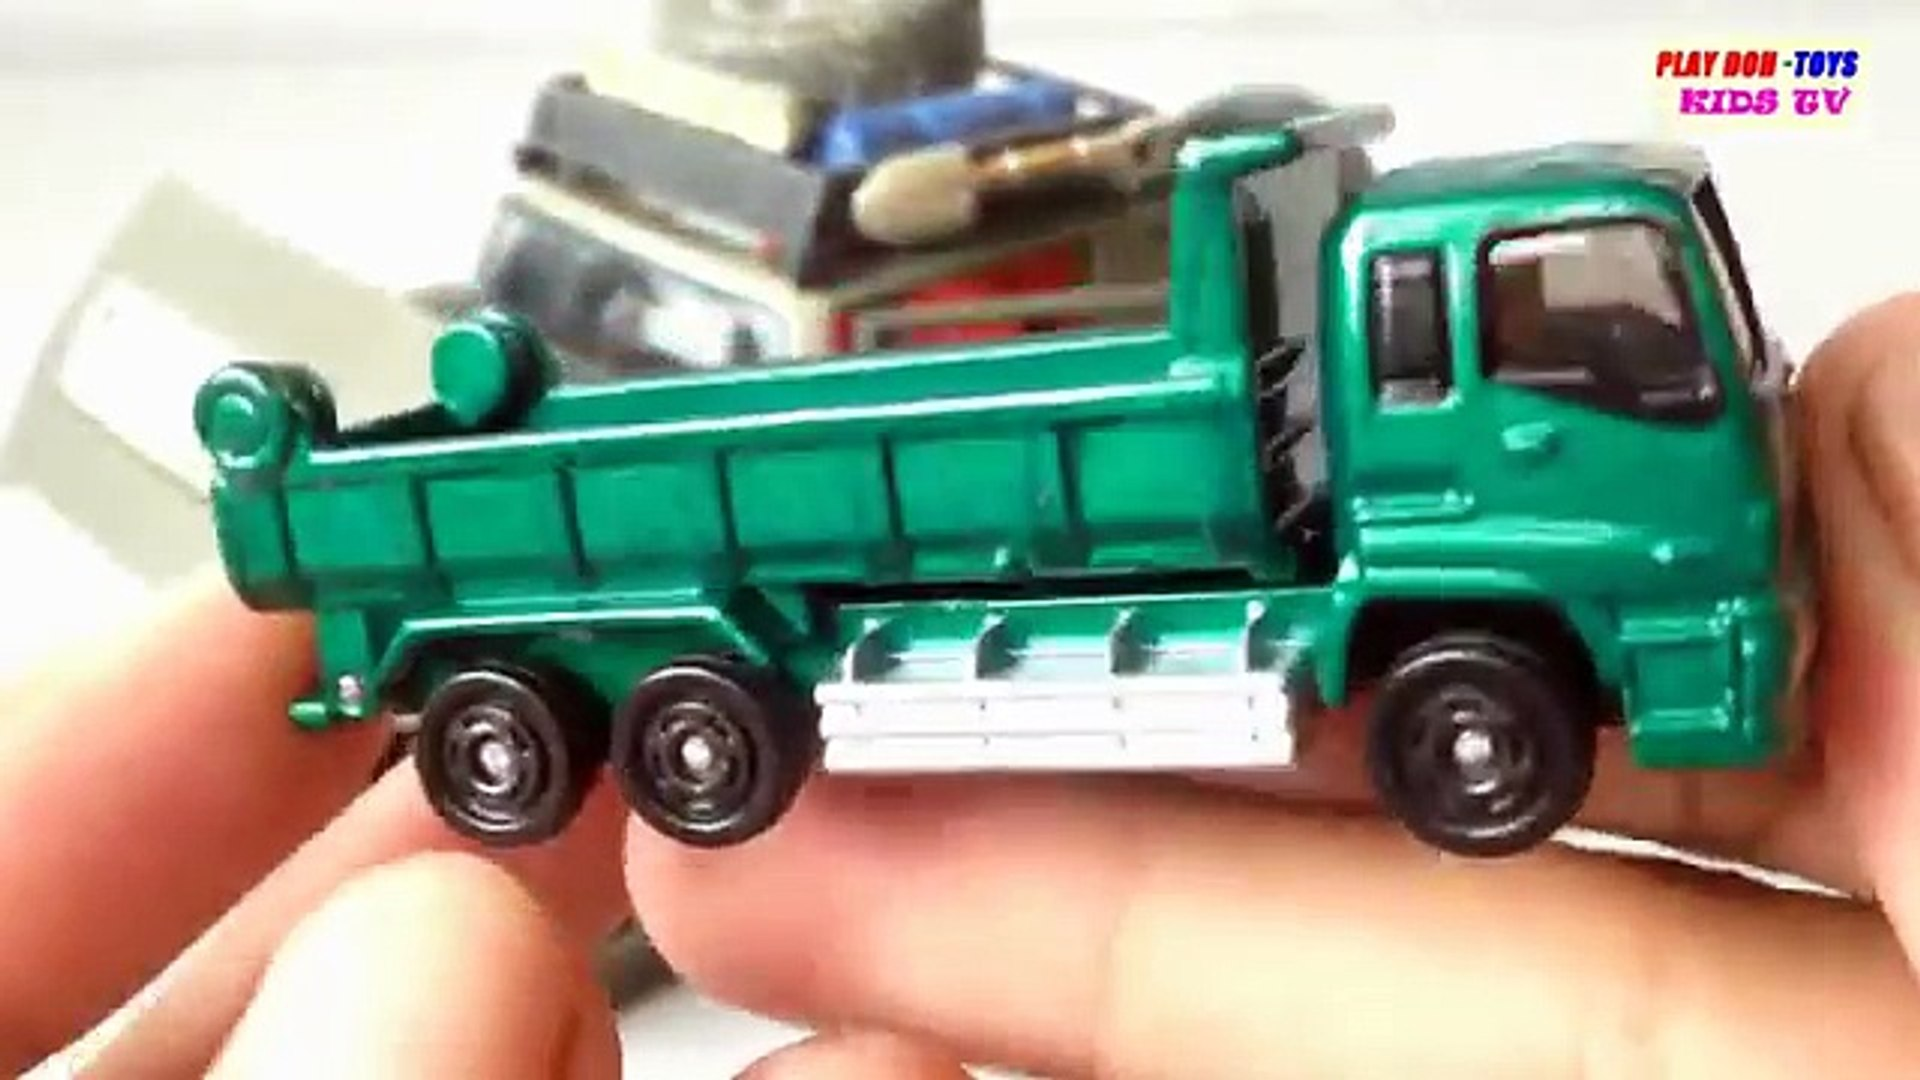 Maisto 2008 Hummer Hx Tomica Dump Truck Toy Car For Children Kids Cars Toys Videos Hd Collection